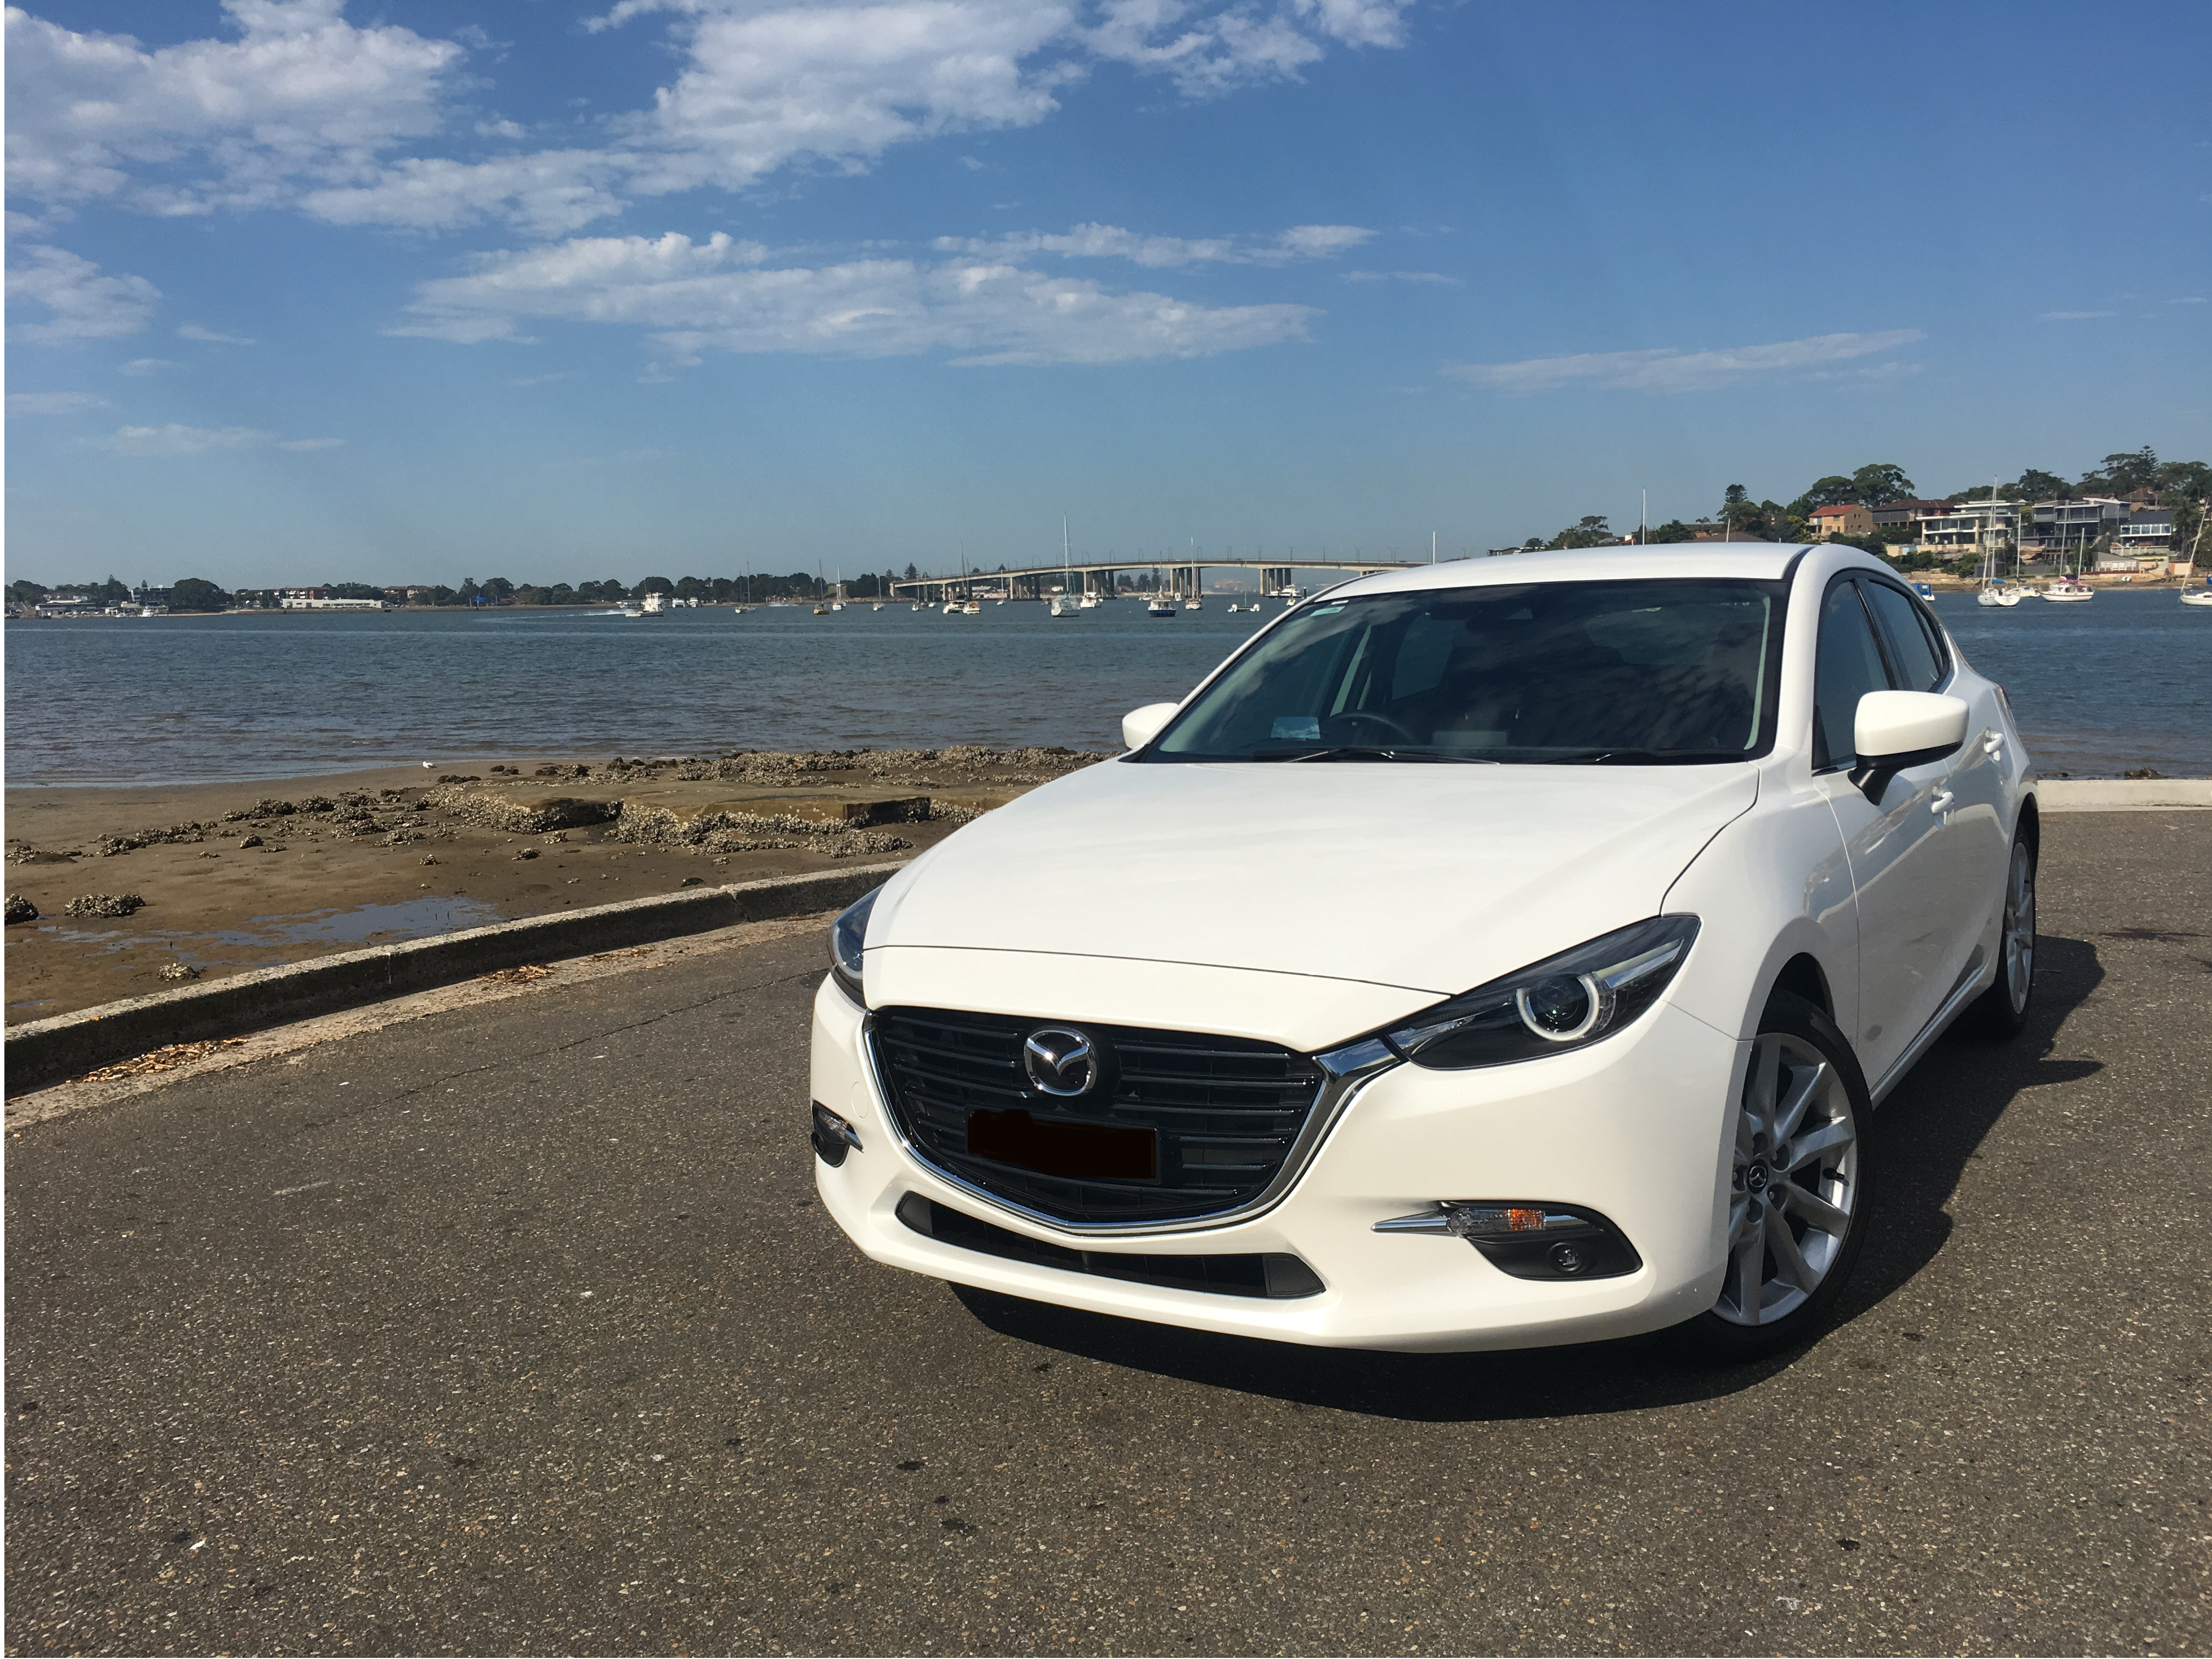 2017 Mazda 3 SP25 GT review | CarAdvice